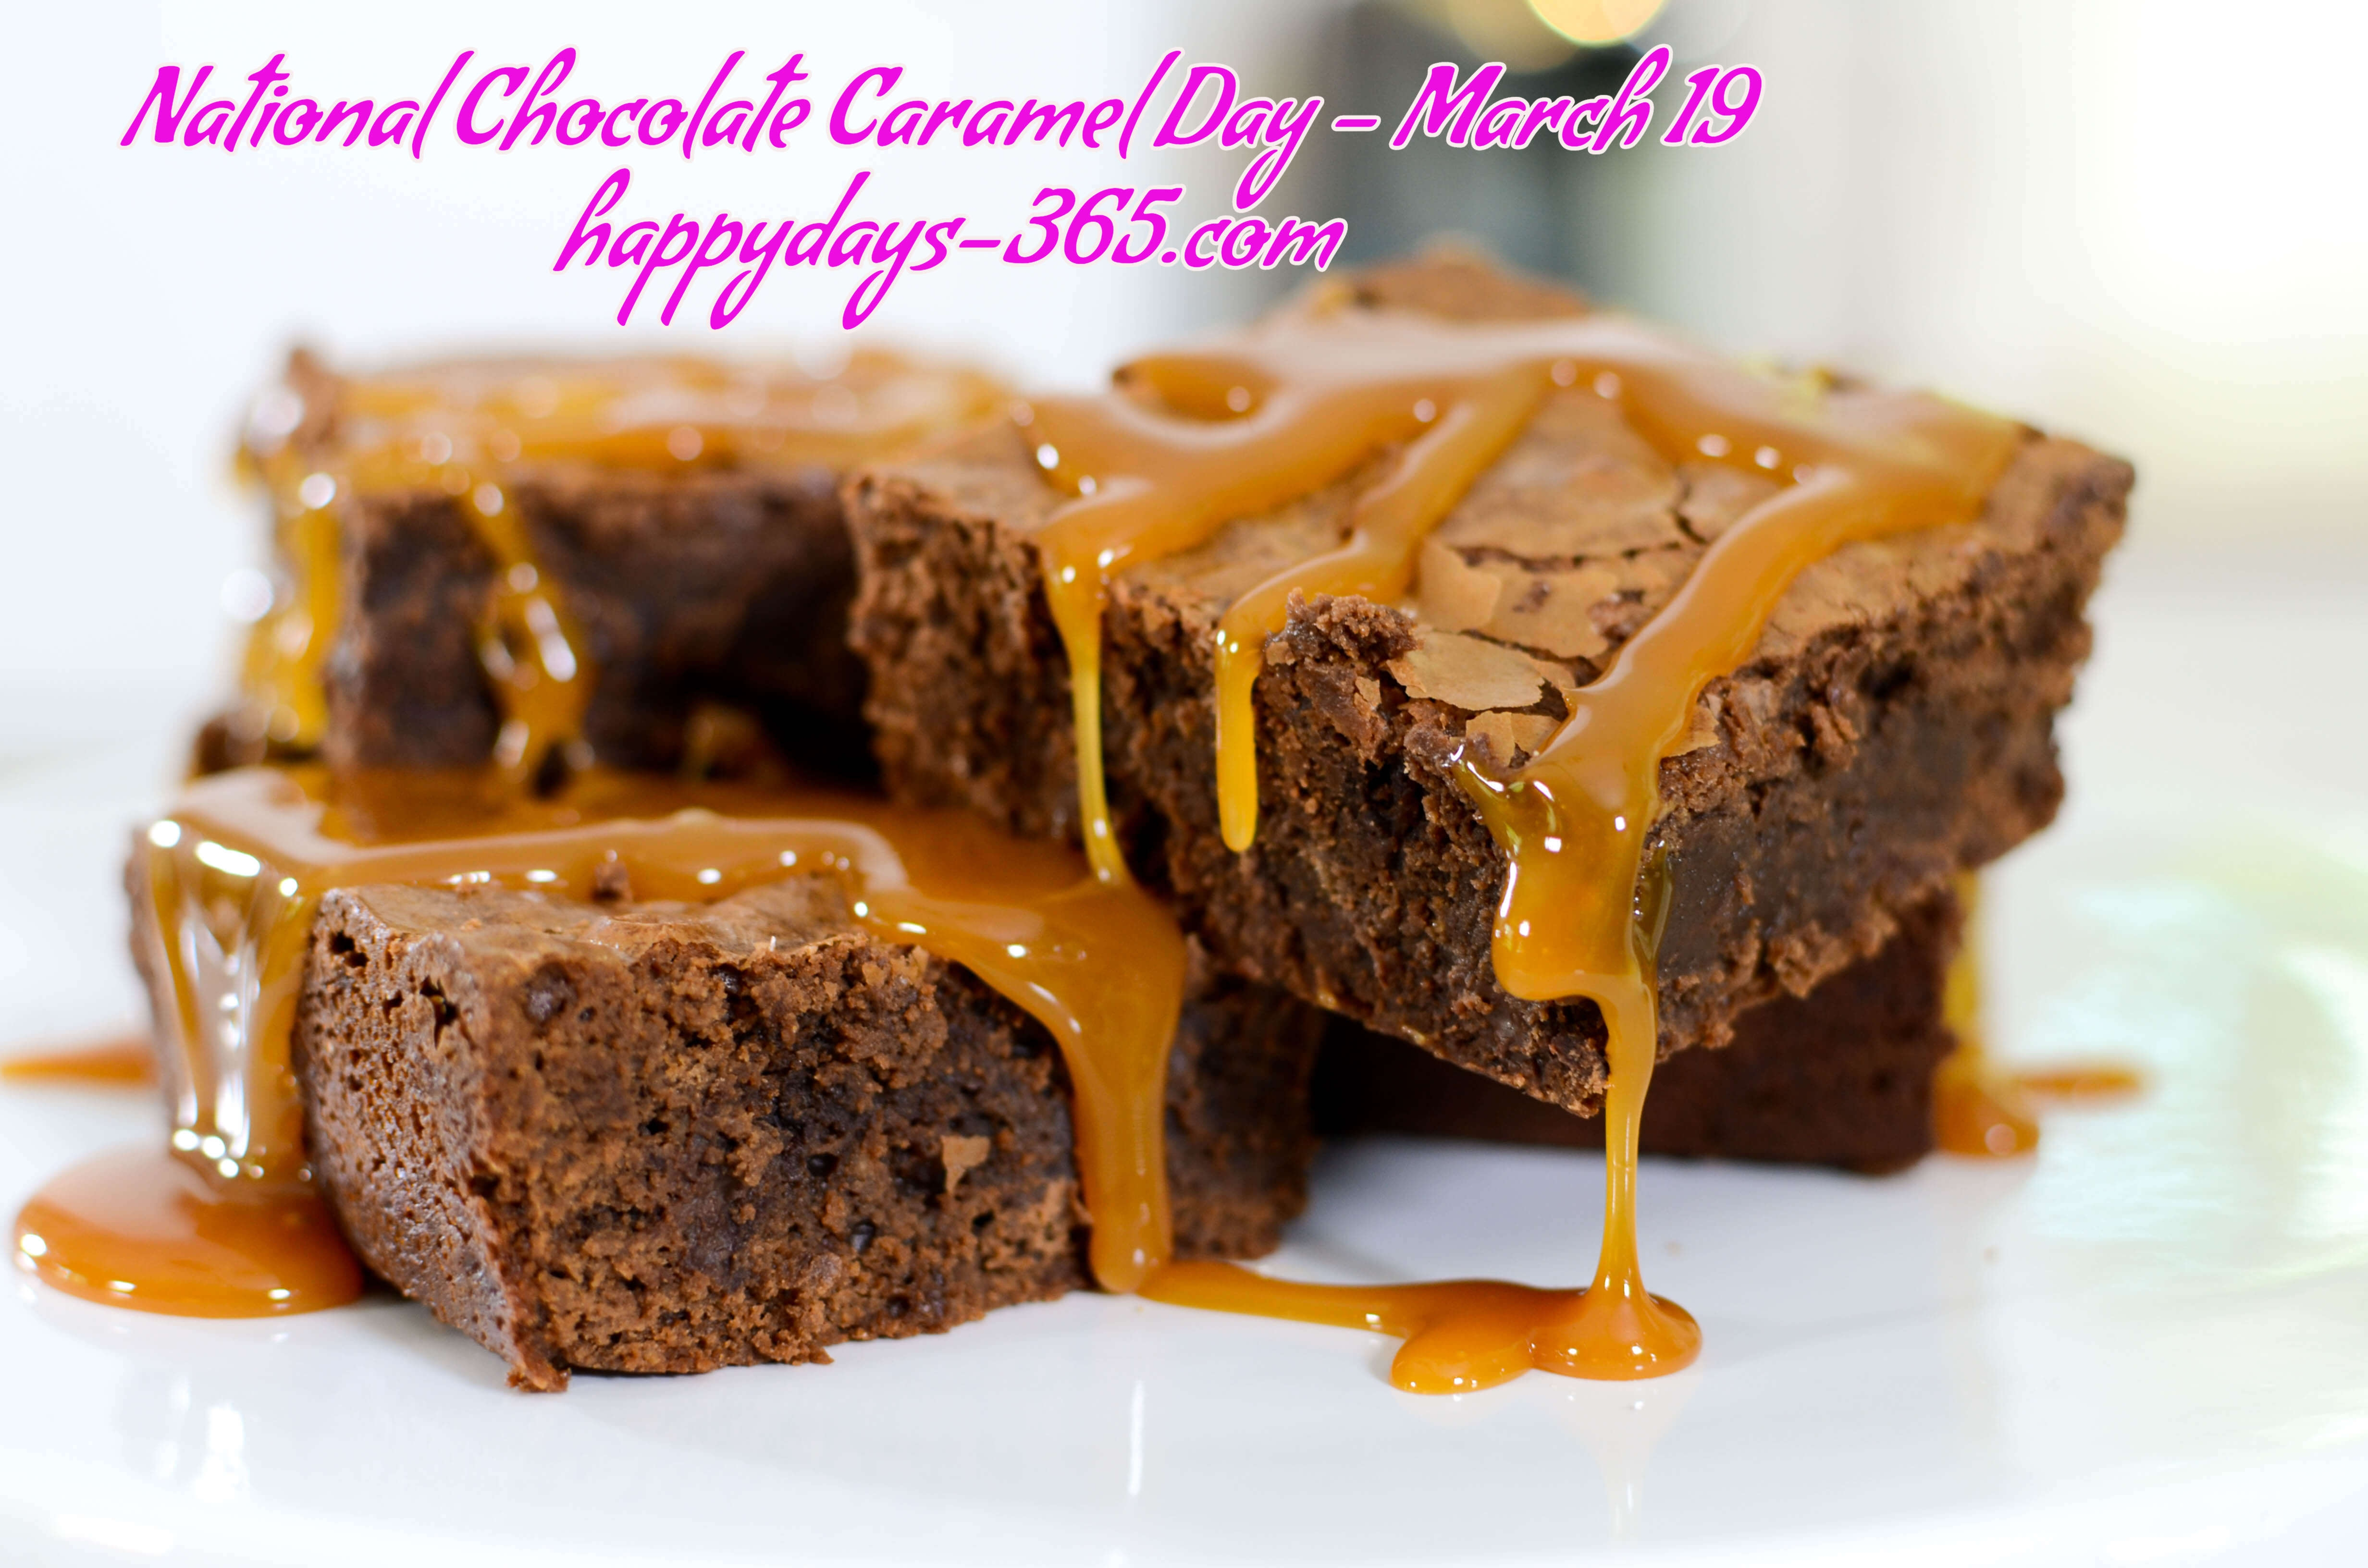 National Chocolate Caramel Day March 19 2019 Happy Days 365